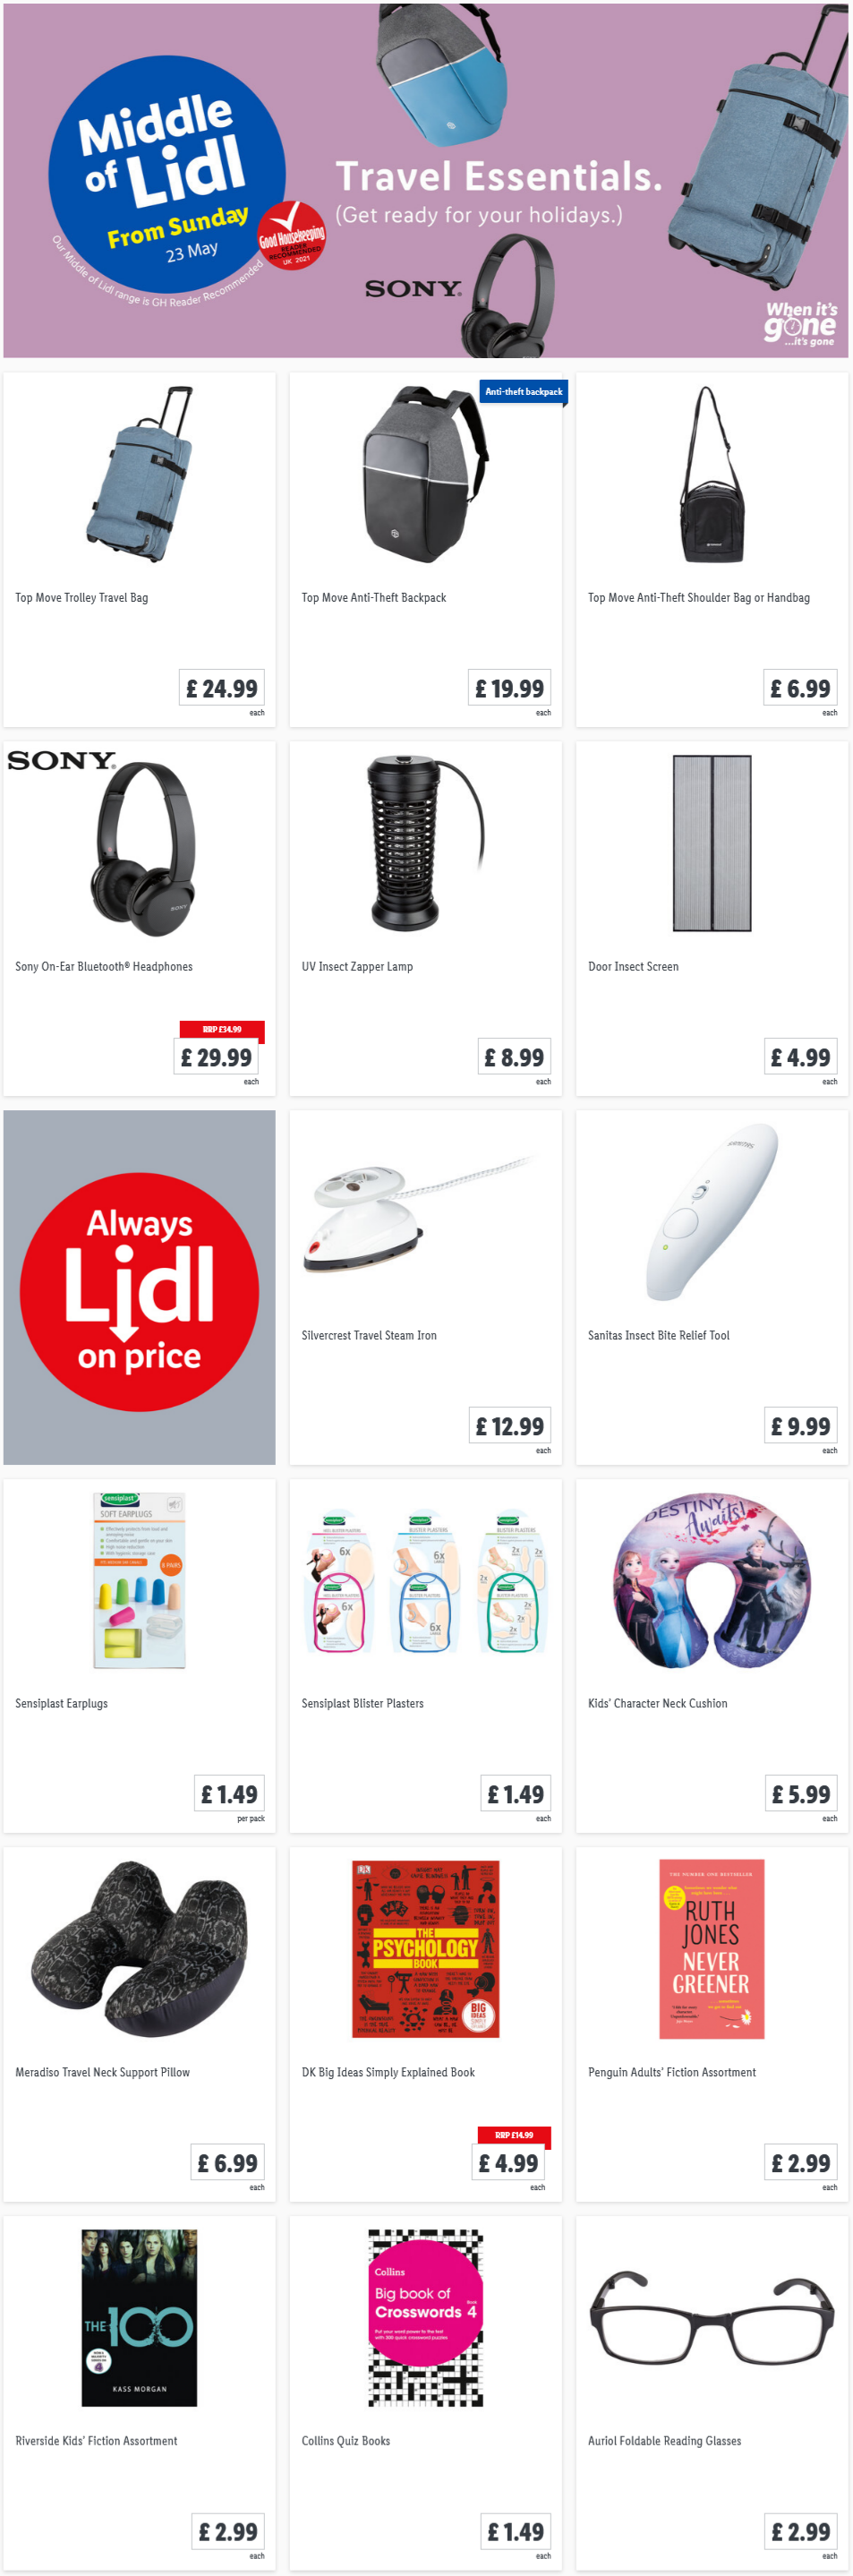 Travel Essential at Lidl From Sunday 23rd May 2021